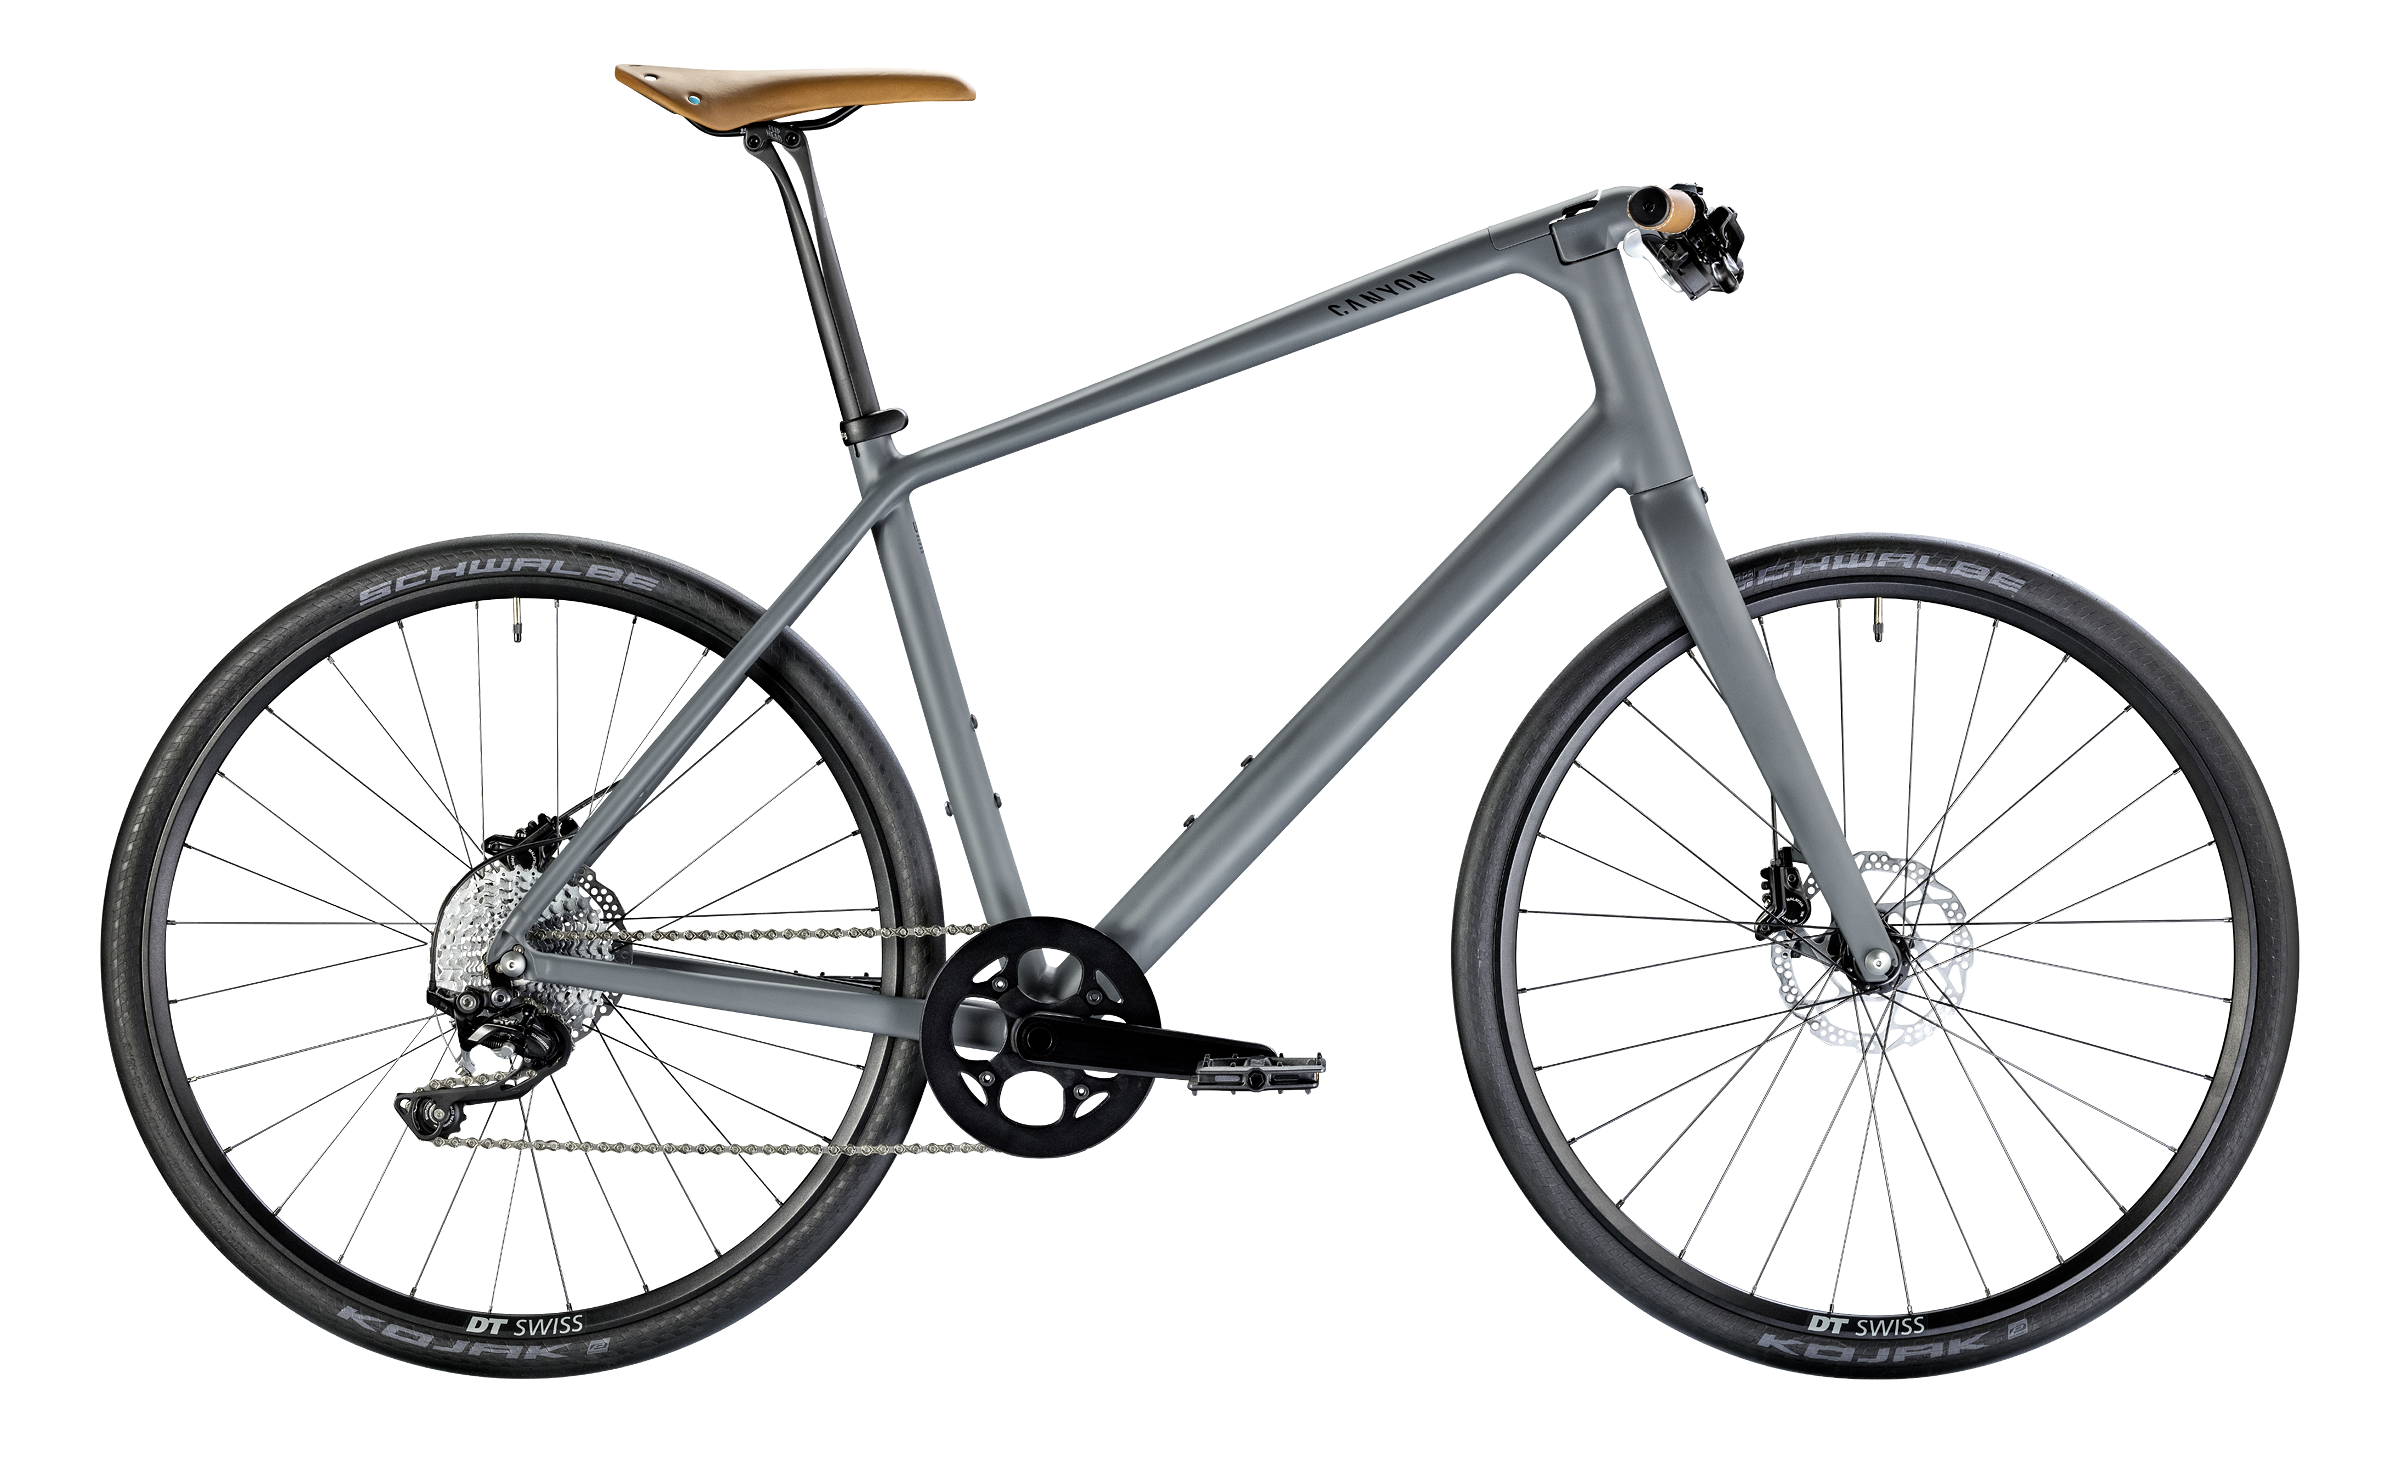 Image of canyon urban and commuter city bikes